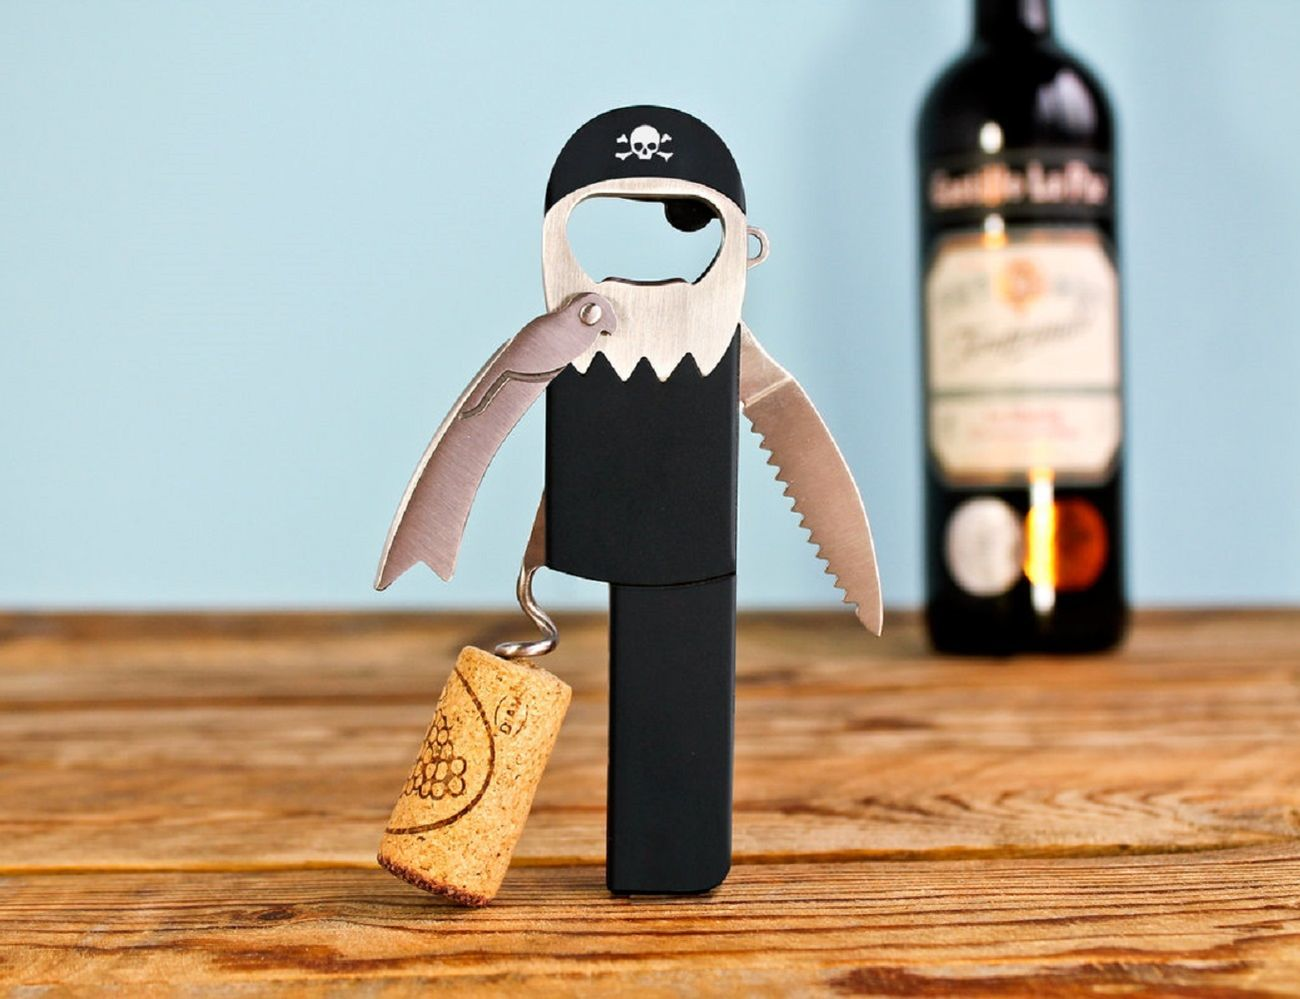 Pirate+Corkscrew+From+Suck+UK